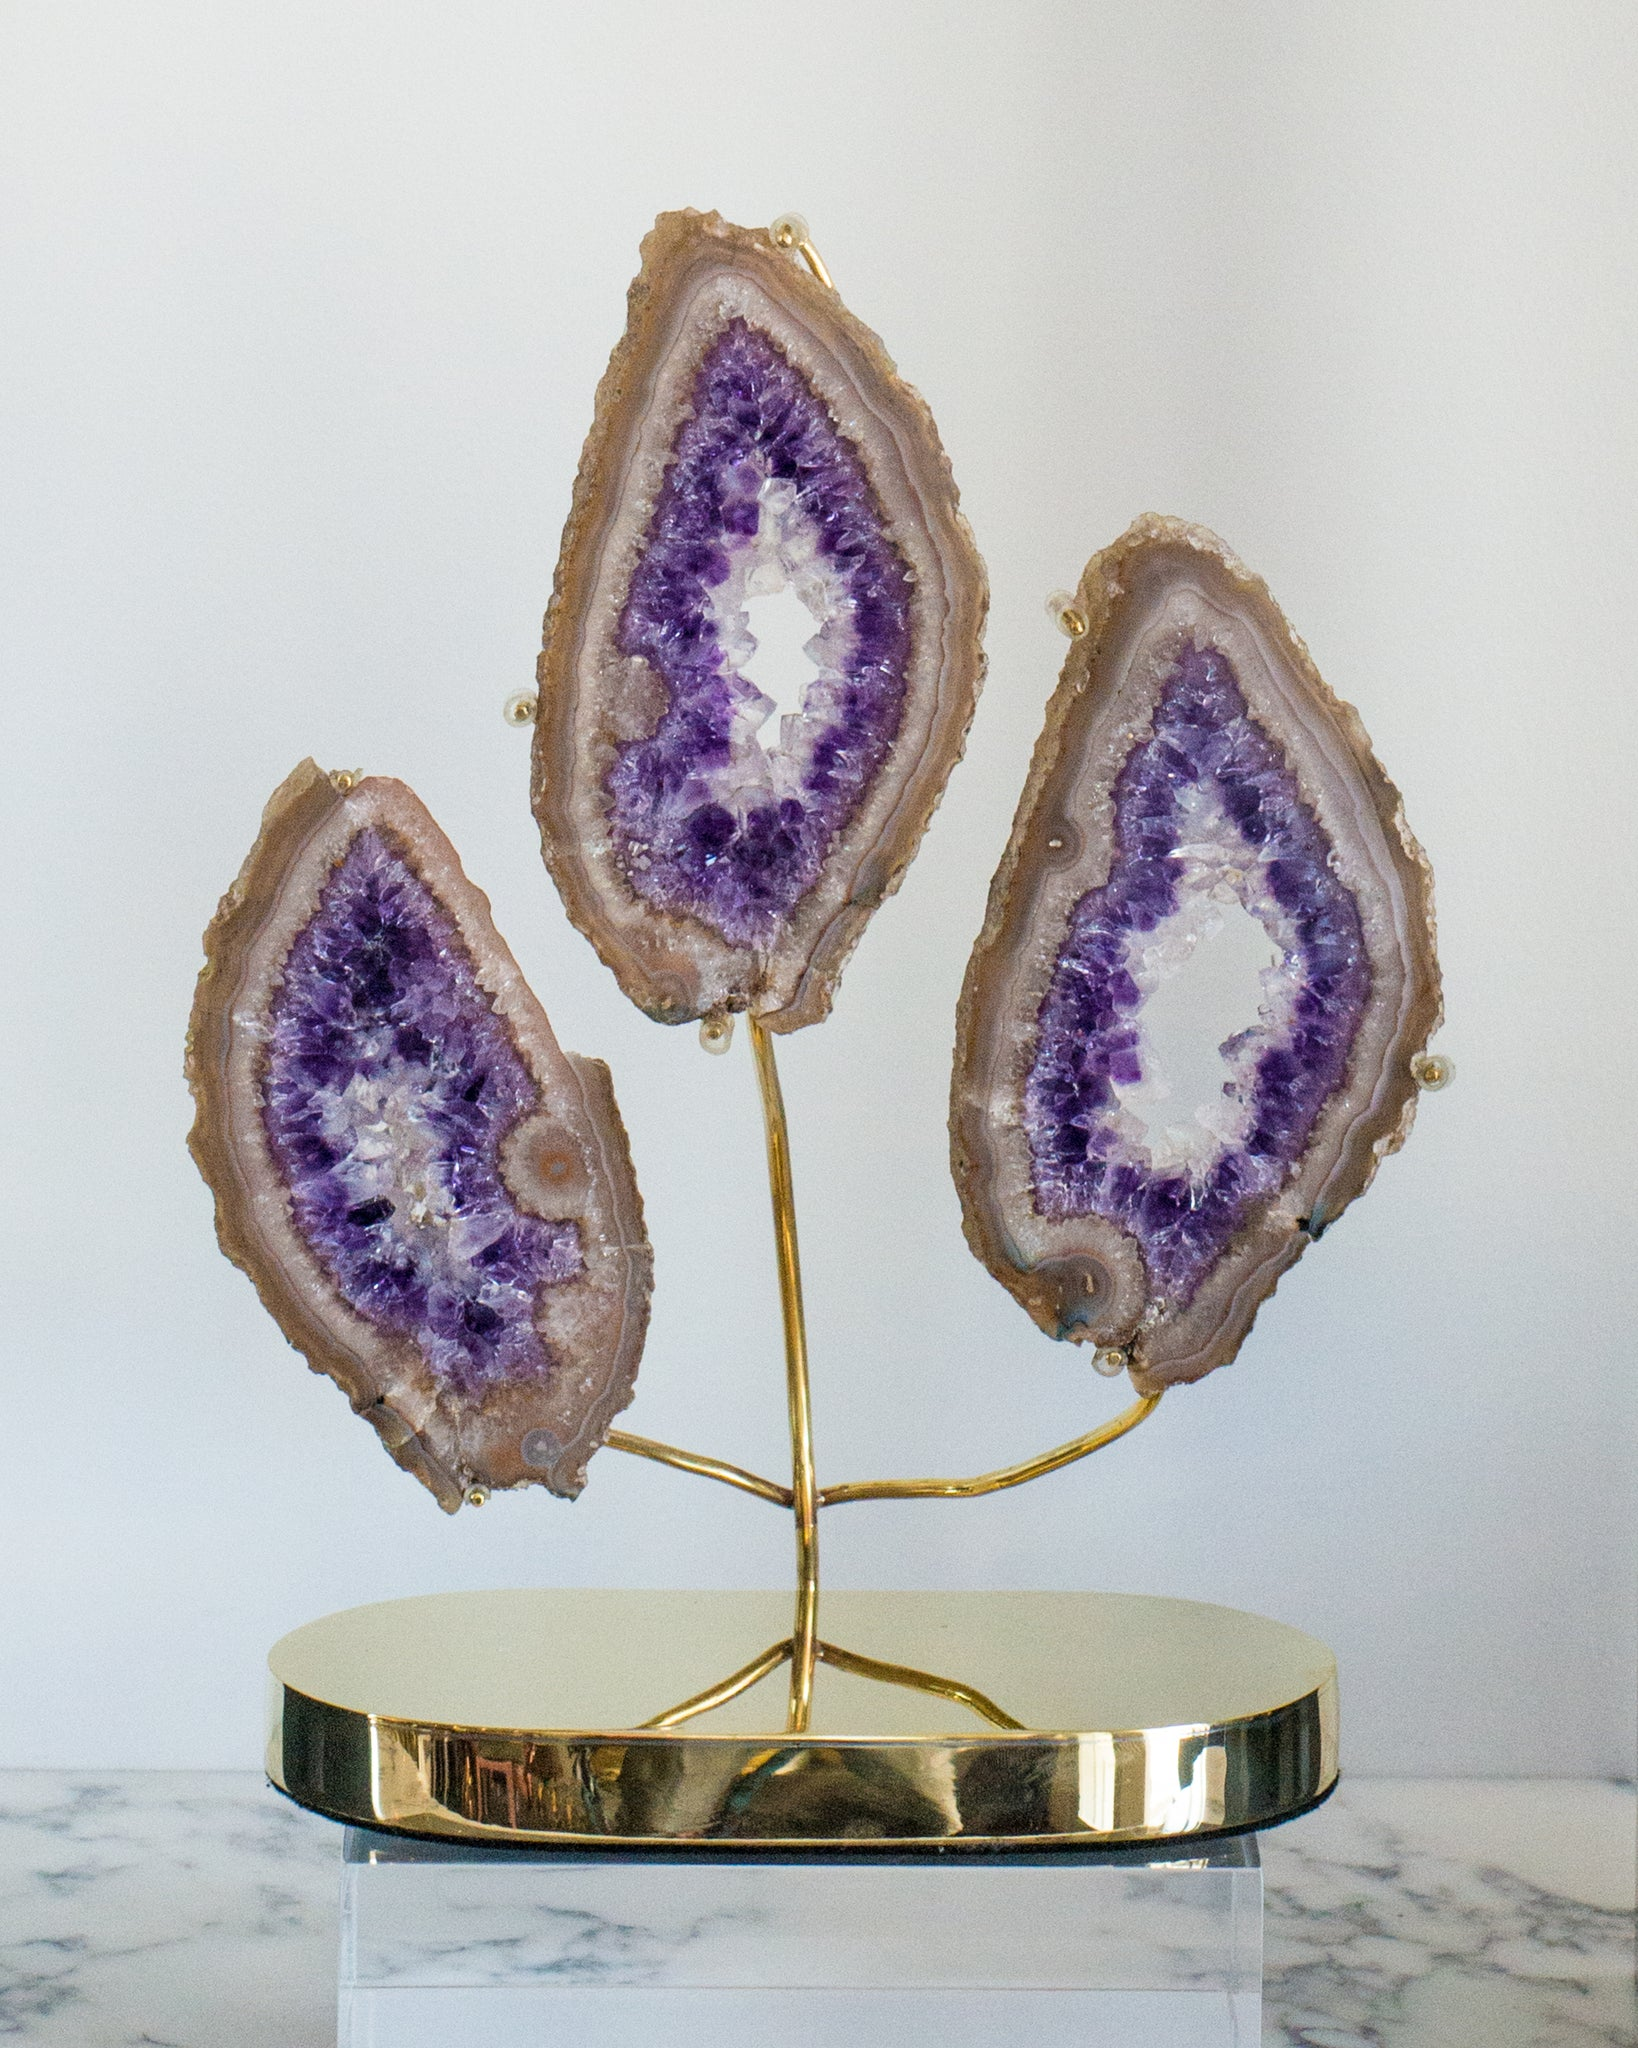 A sculpture of 3 Amethyst slices attached to a custom Studio Maison Nurita brass base. Amethyst is a remarkable stone of spirituality and contentment, it stills the mind and enhances a meditative state. This objet will add a touch of drama to any space.